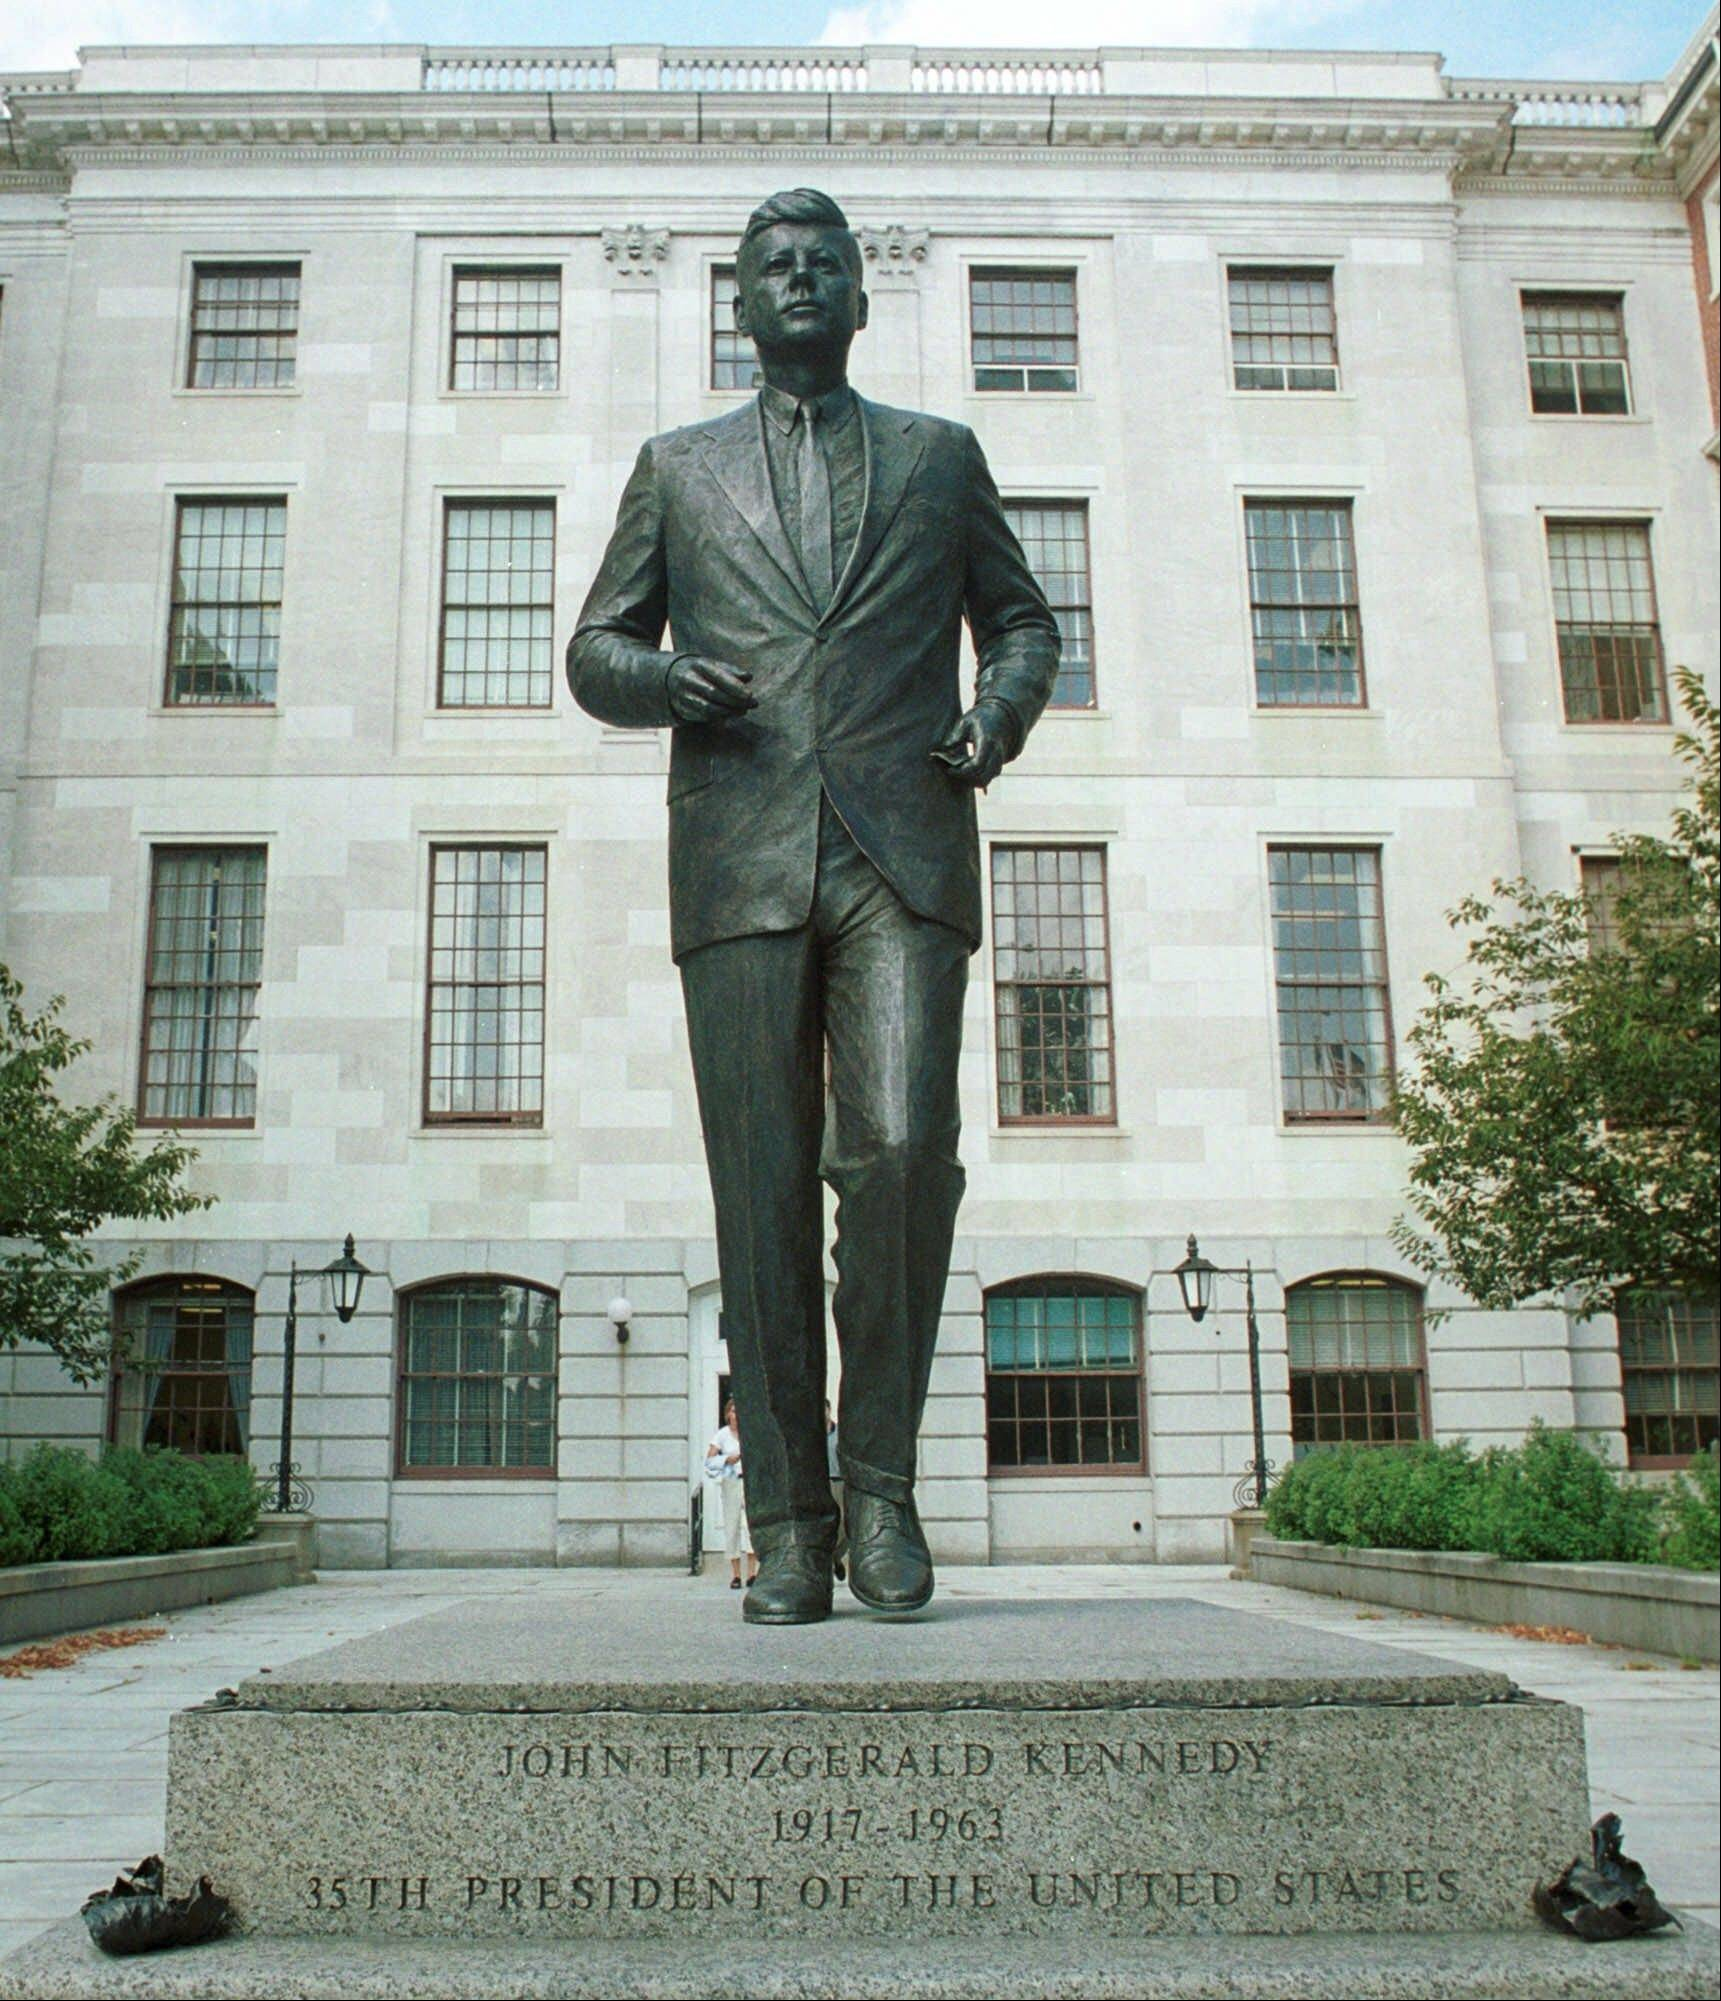 A memorial statue of President John F. Kennedy stands on the grounds of the Massachusetts Statehouse in Boston, which is one of three cities that loom large in the life and death of John F. Kennedy.